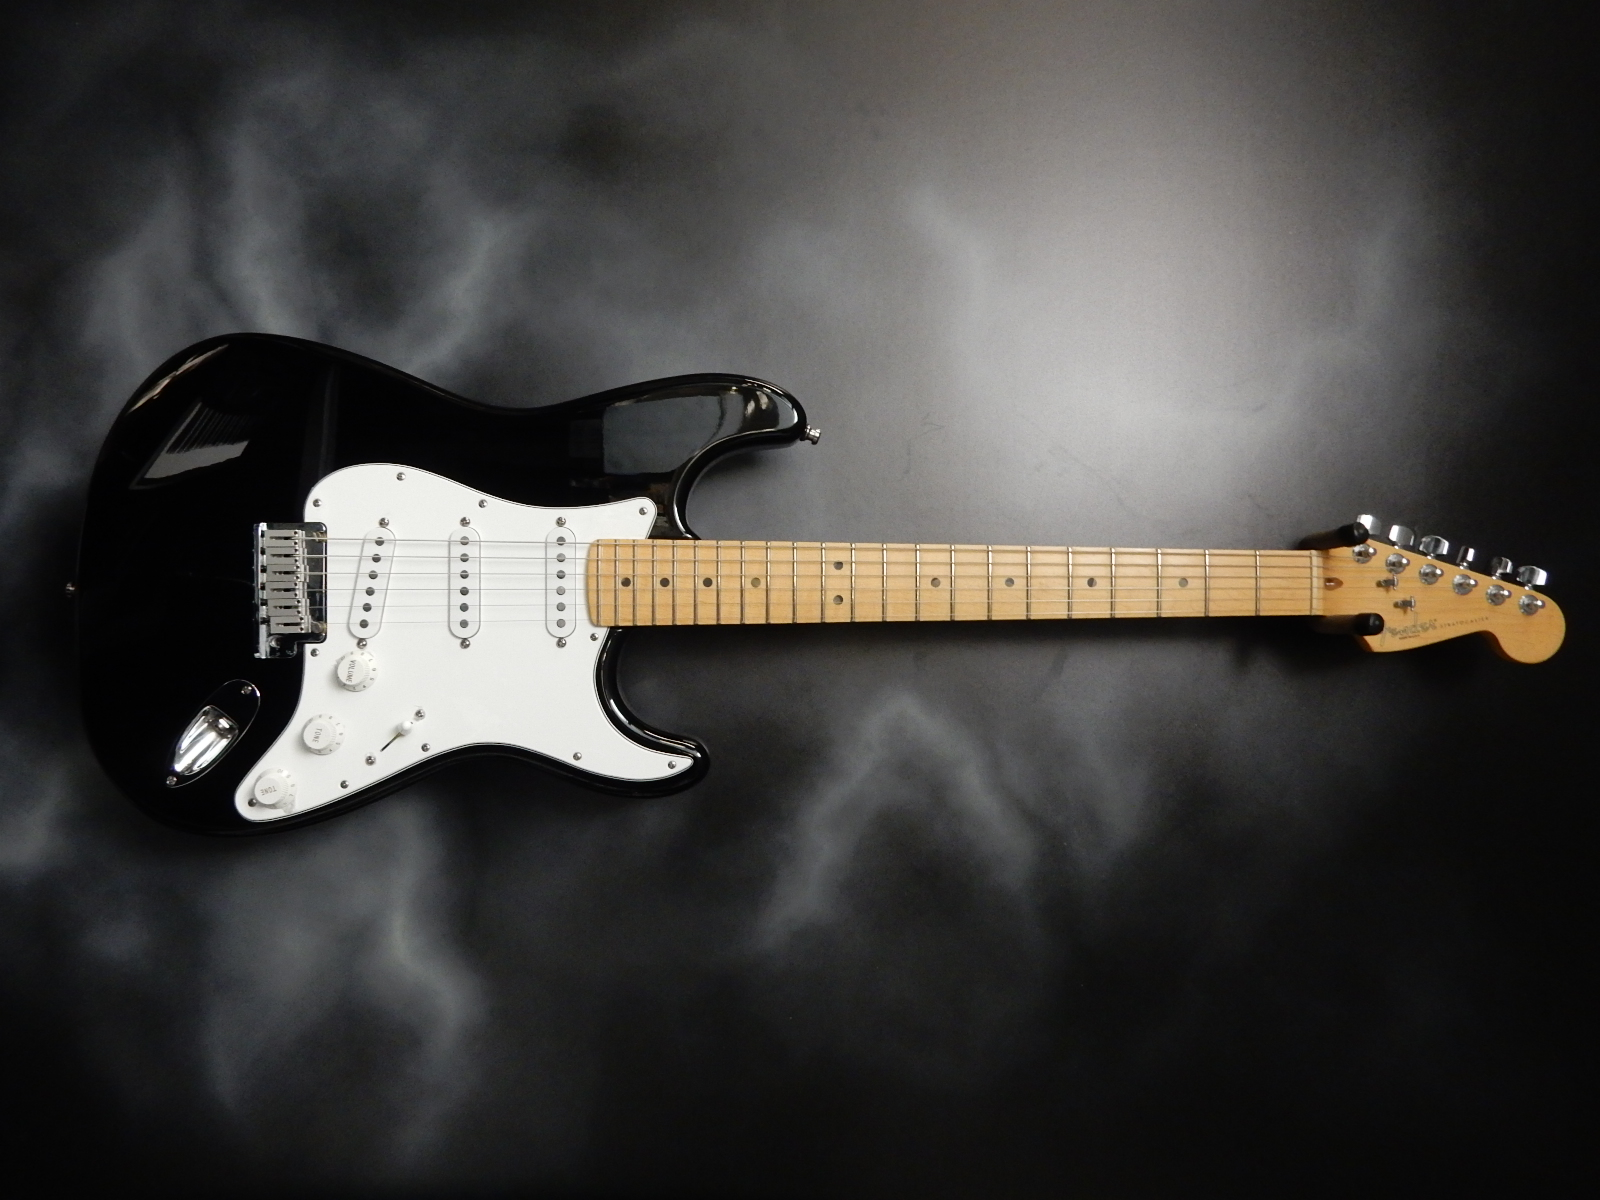 Fender - Am Std Stratocaster